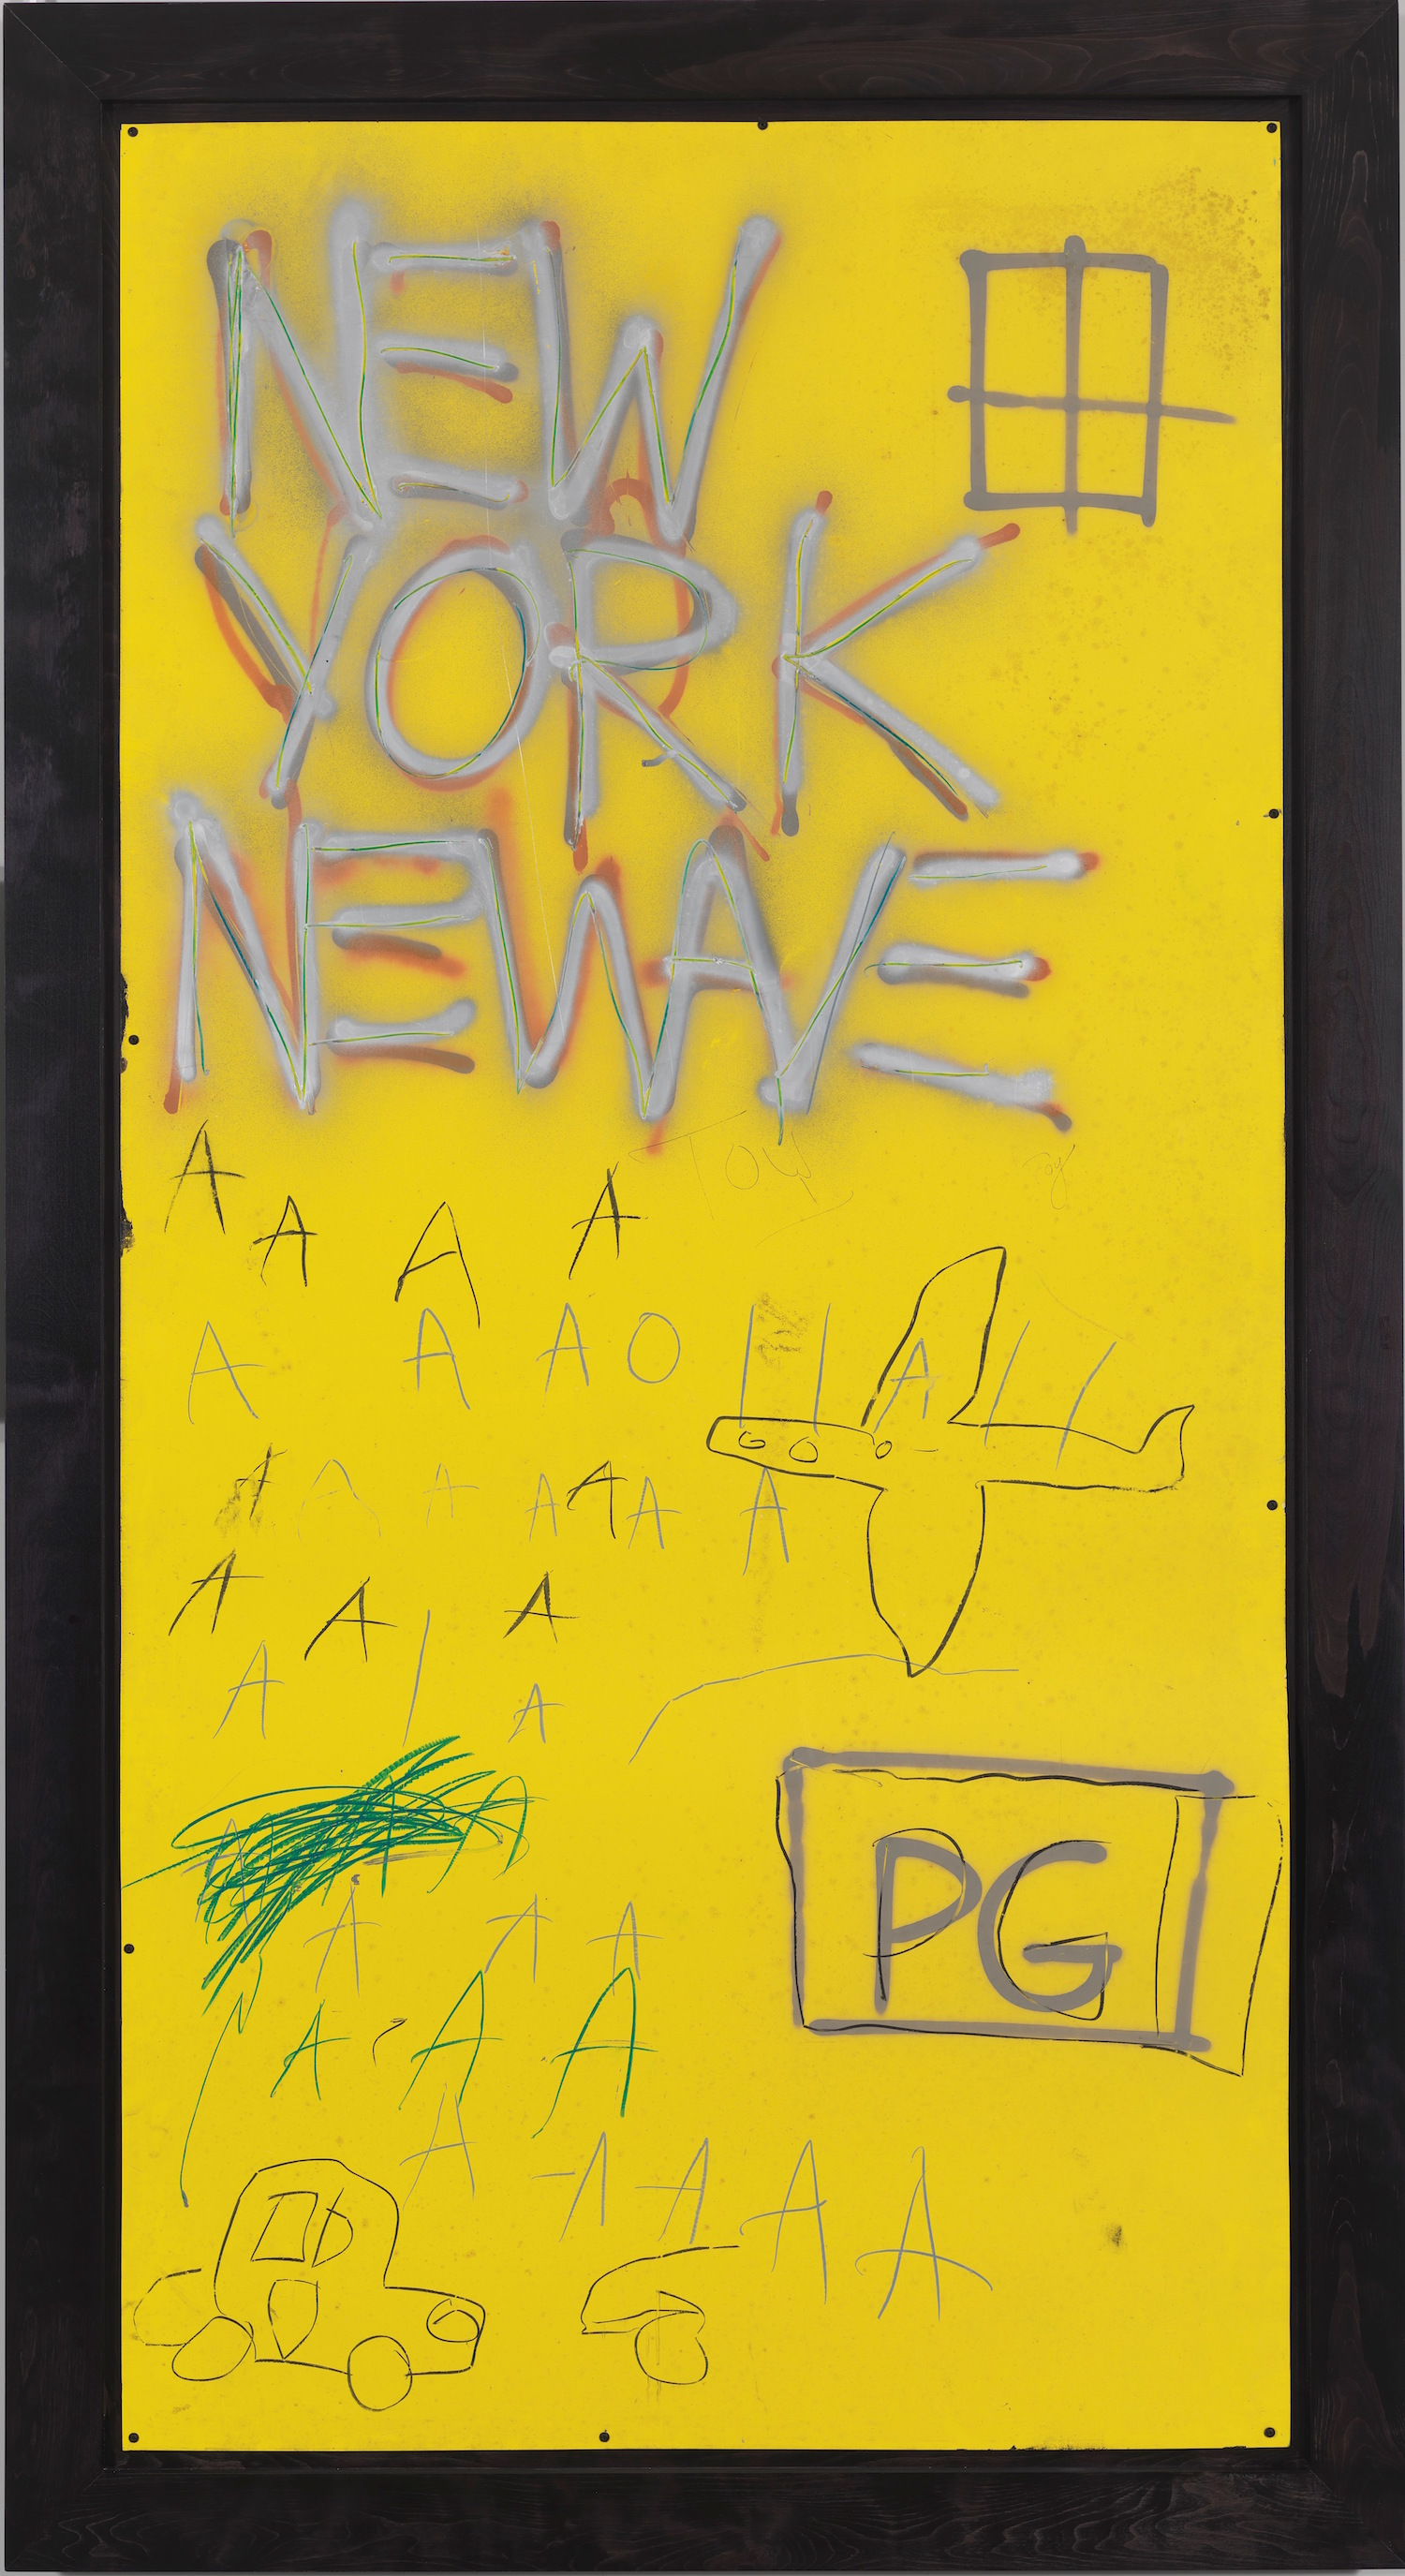 Jean-Michel Basquiat Untitled, 1980 Courtesy Whitney Museum of American Art, New York. © The Estate of Jean-Michel Basquiat/ Artists Rights Society (ARS), New York/ ADAGP, Paris. Licensed by Artestar, New York.